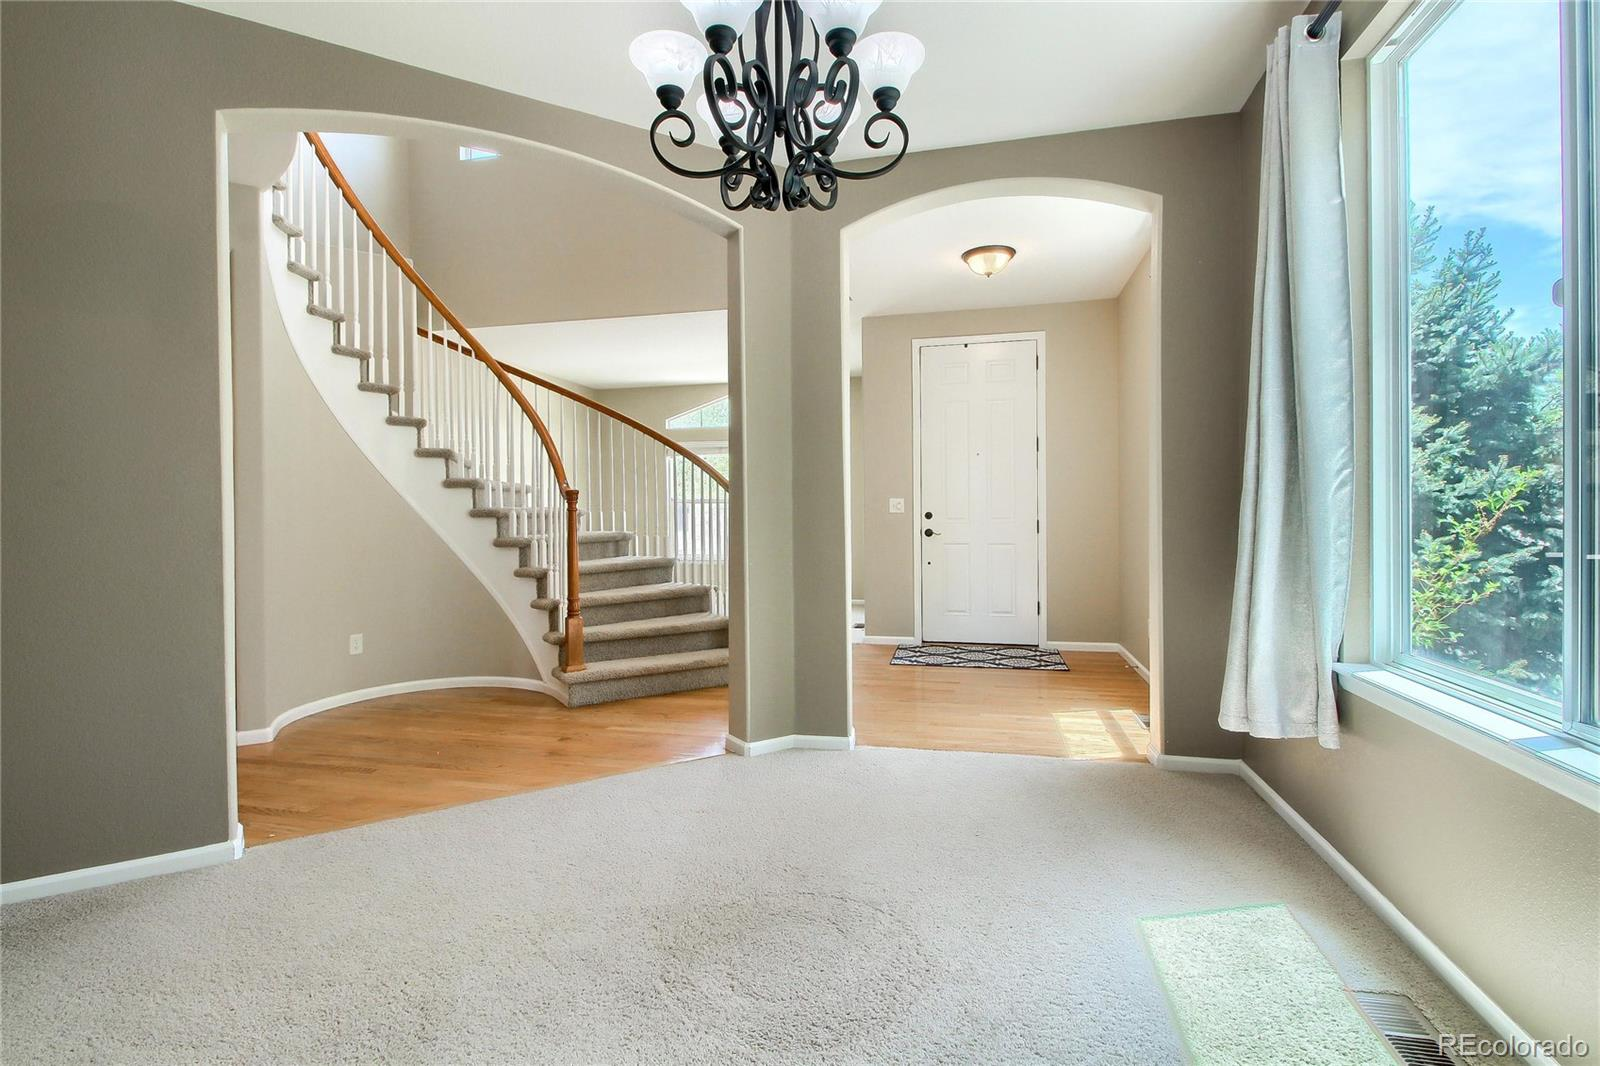 MLS# 9905484 - 8 - 2705 Middlebury Drive, Highlands Ranch, CO 80126